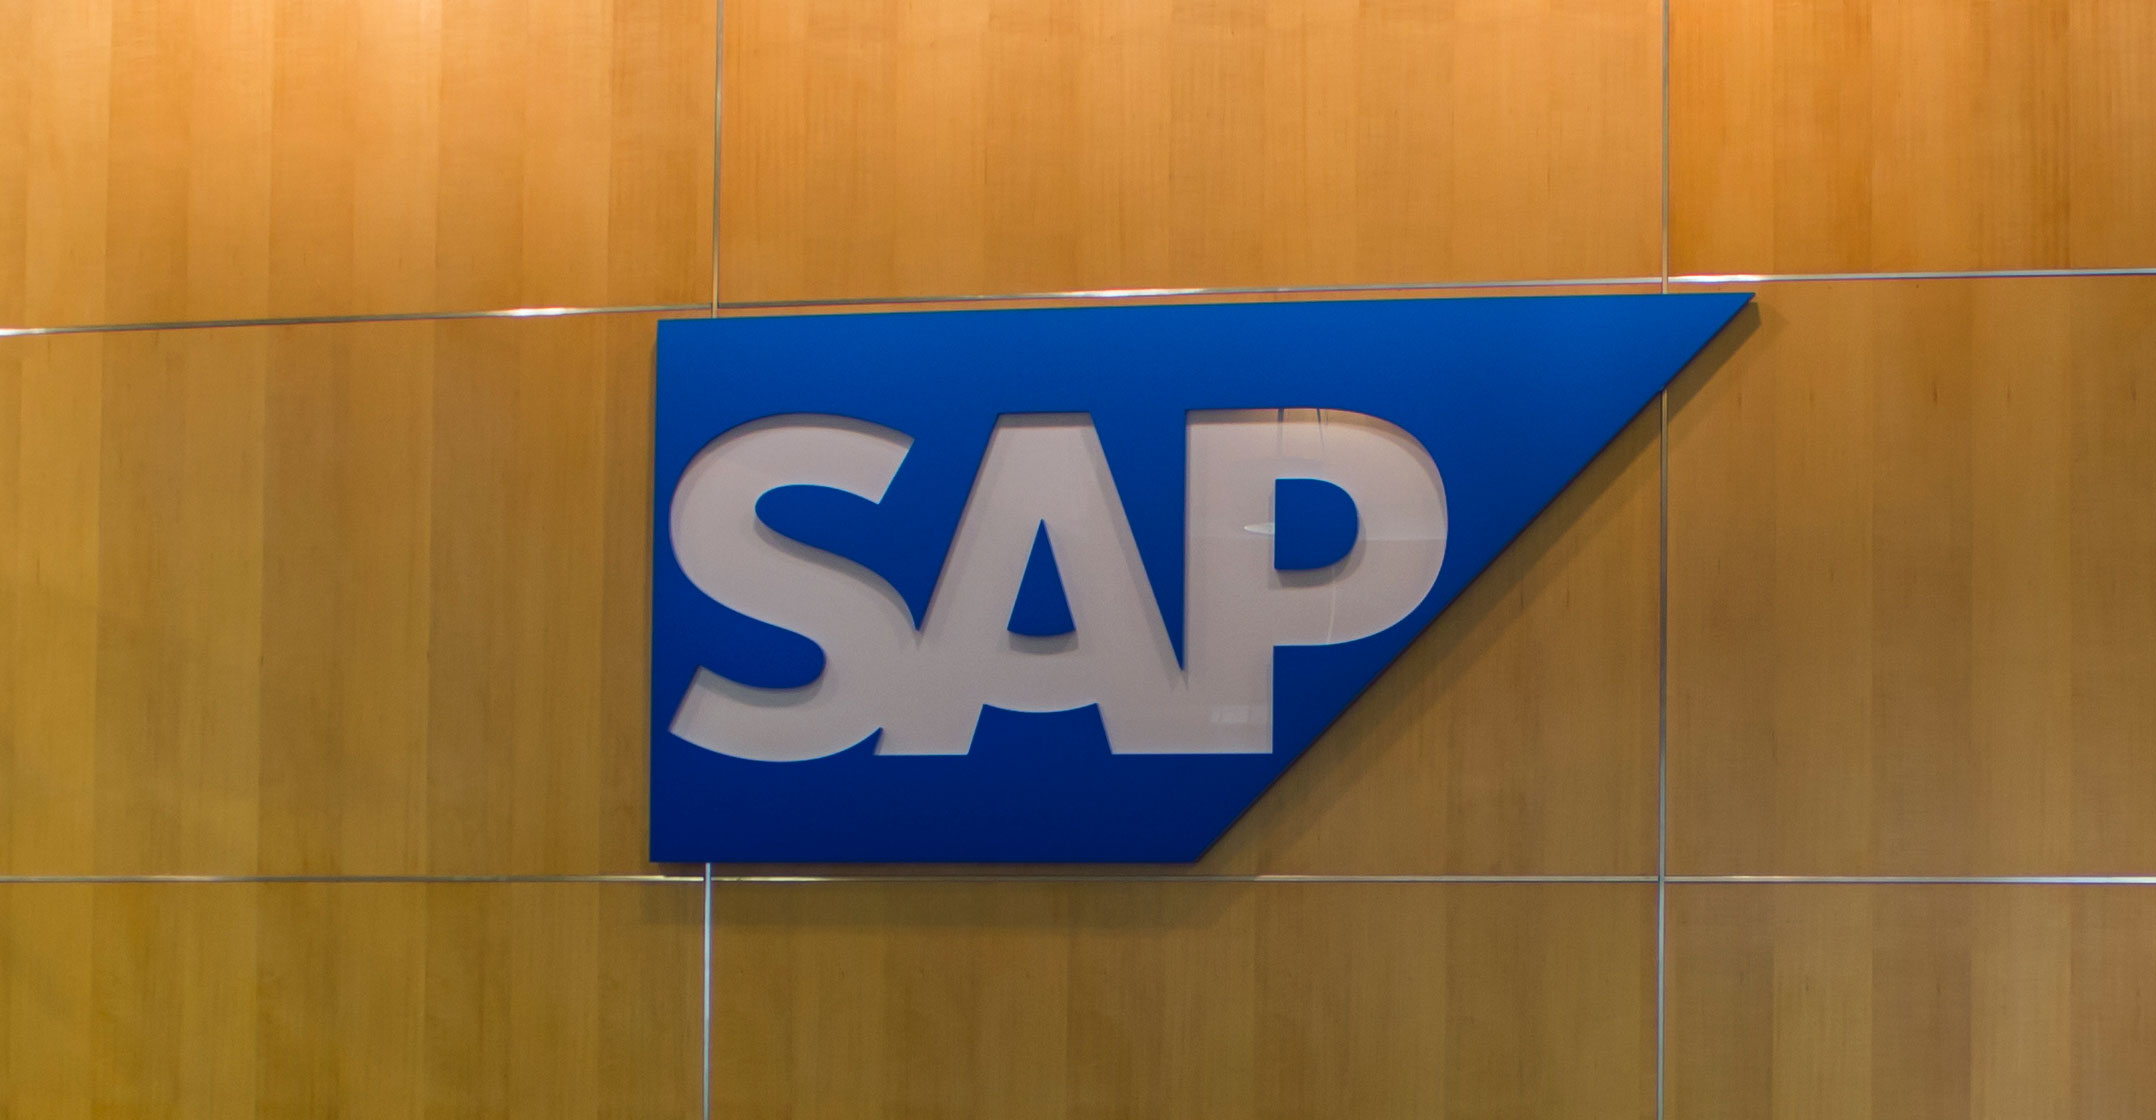 SAP suspends SA management as it launches investigation into Gupta links